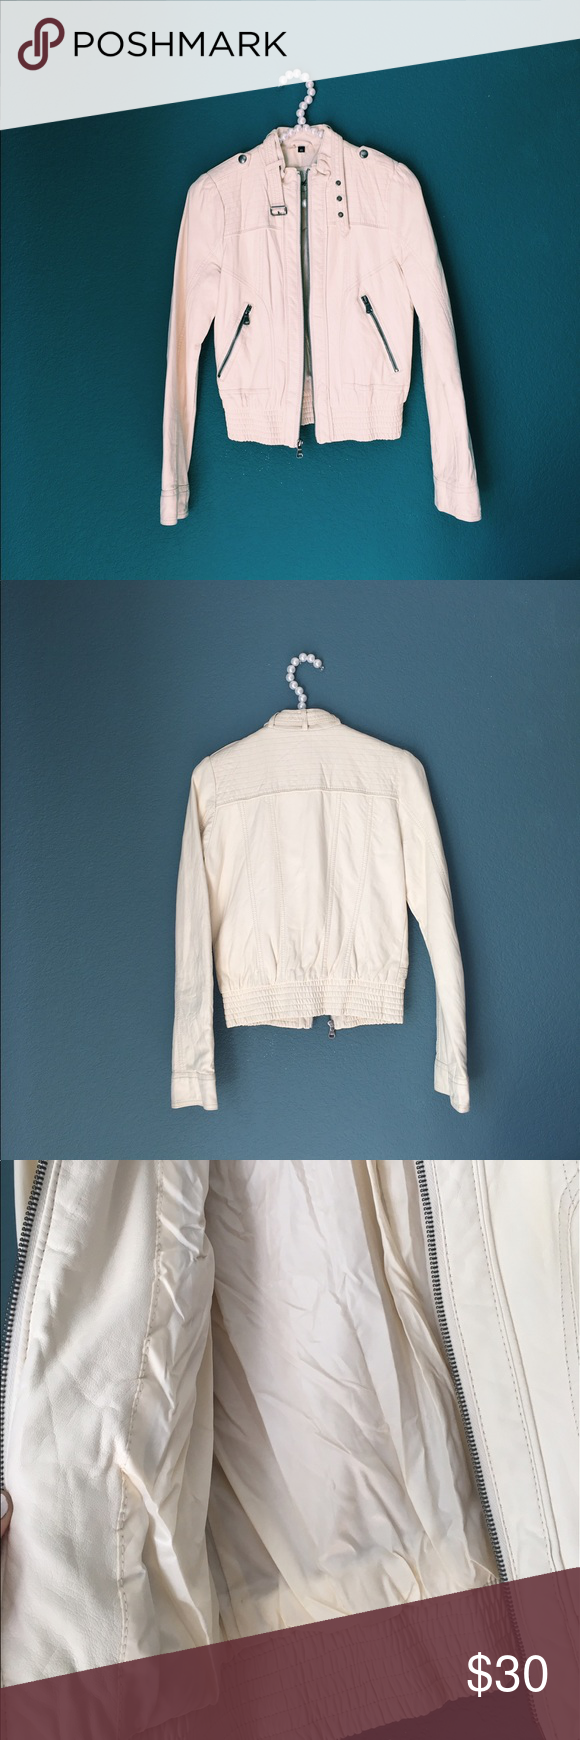 guess creme blazer offers welcome super cute creme blazer. Never really worn so in excellent condition. Let me know if you have any questions. Guess Jackets & Coats Blazers